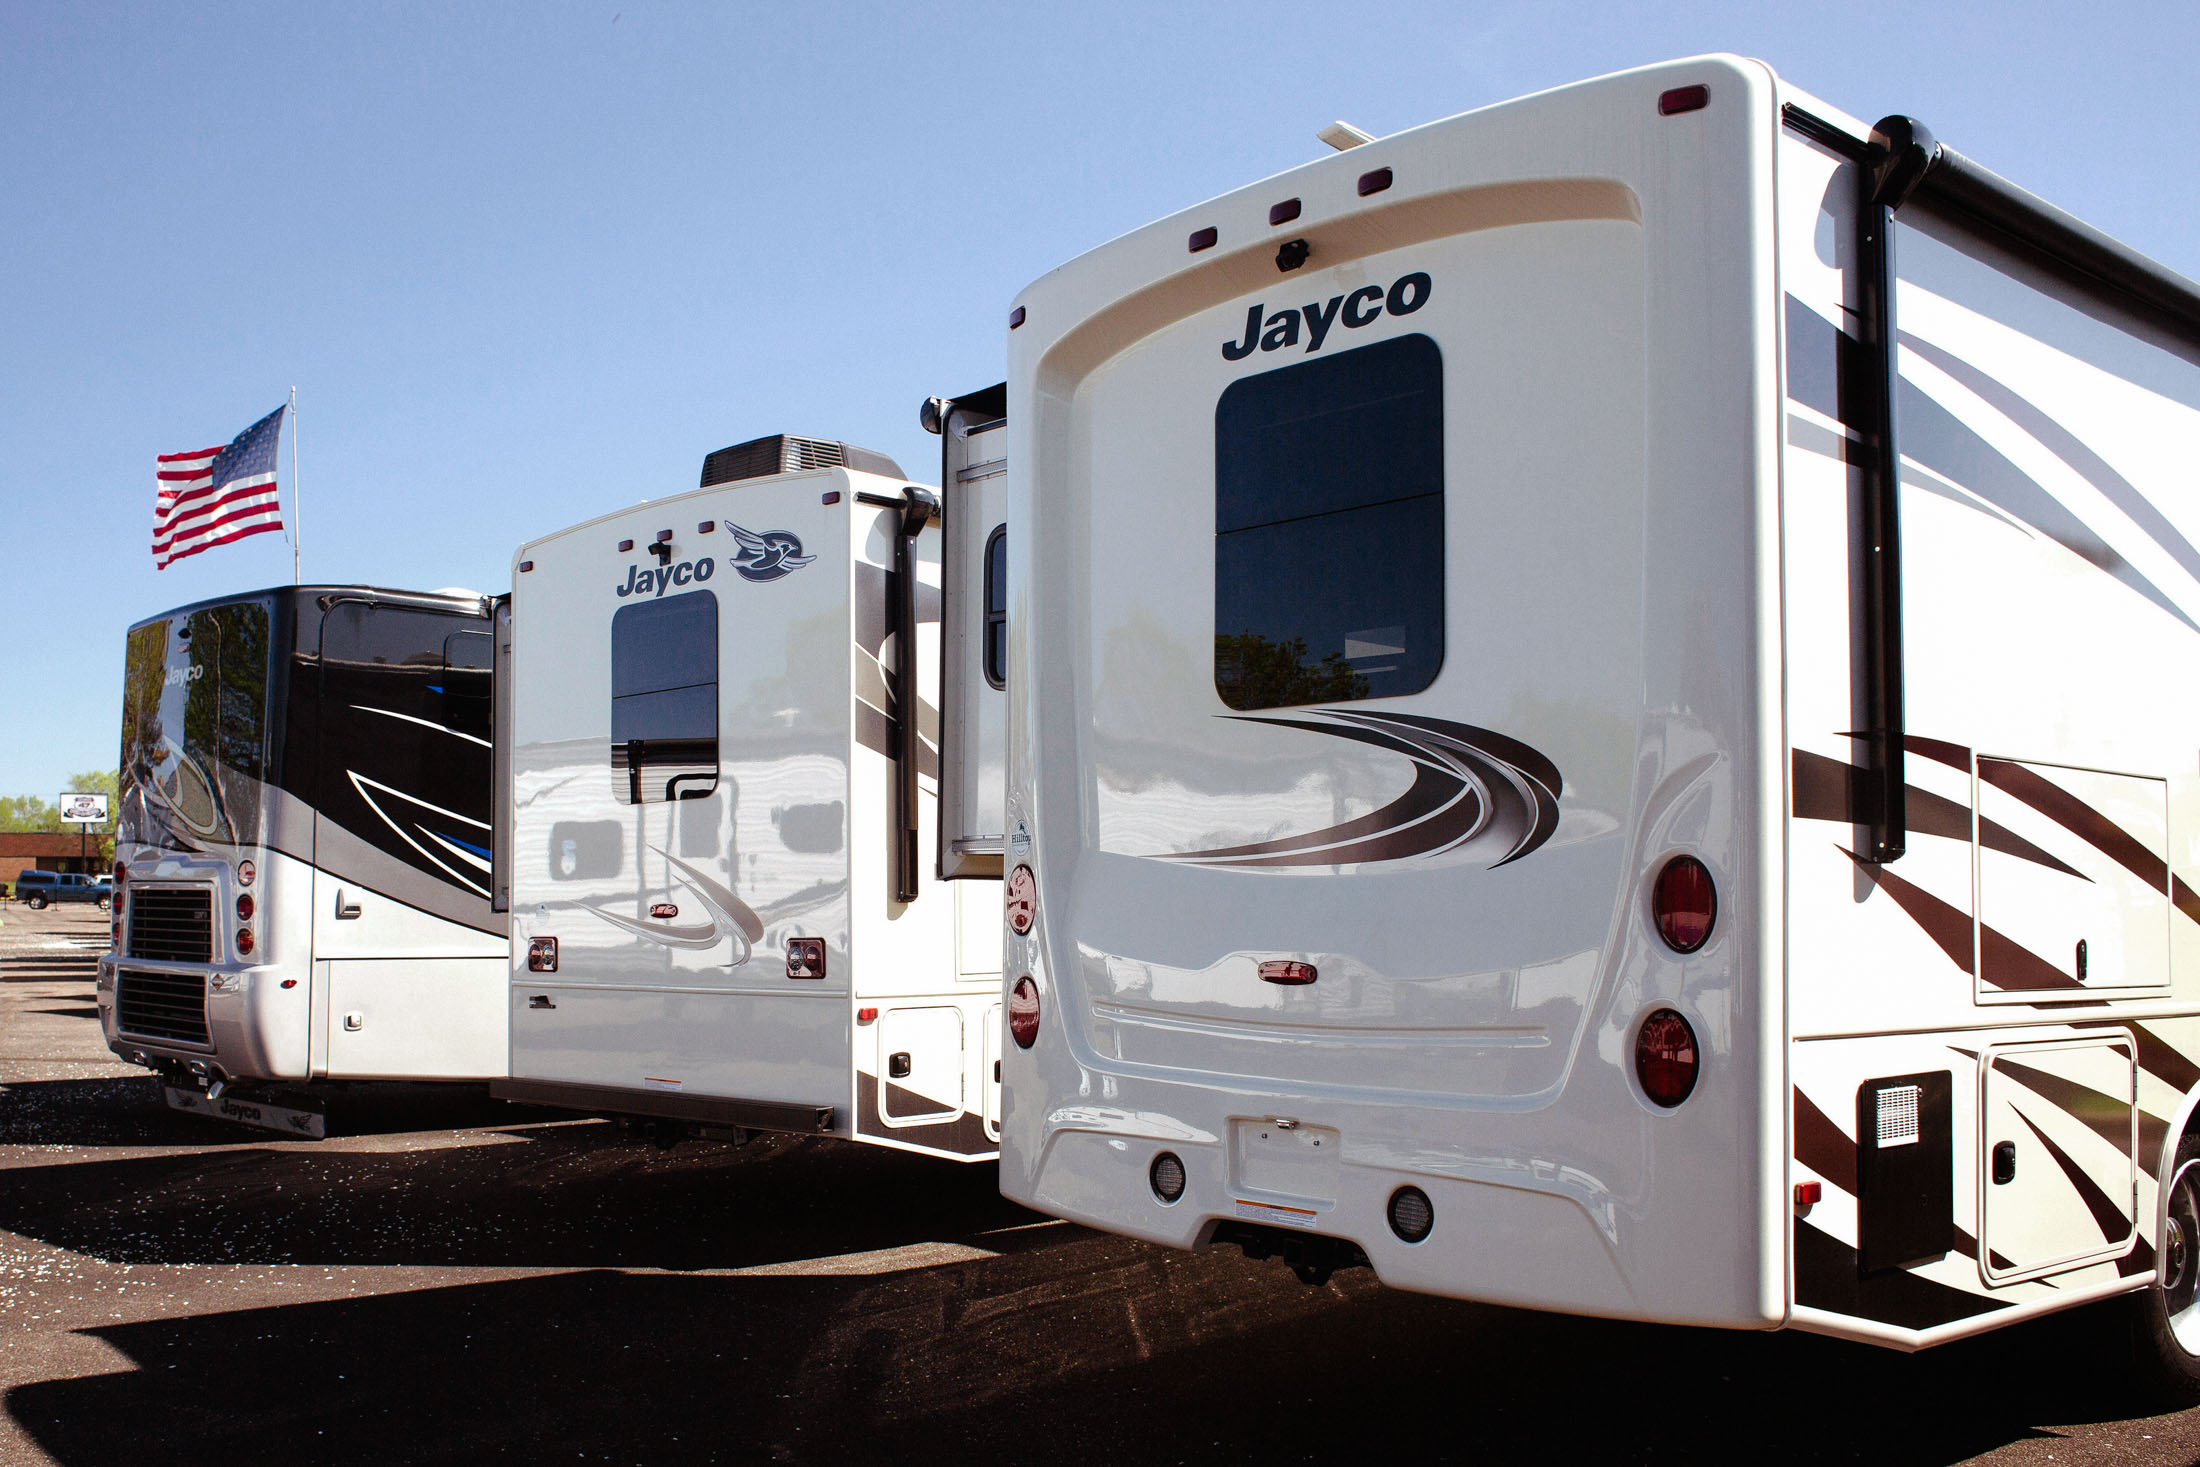 relates to Scared Americans Desperate to Travel Are Buying Up 'Covid Campers'